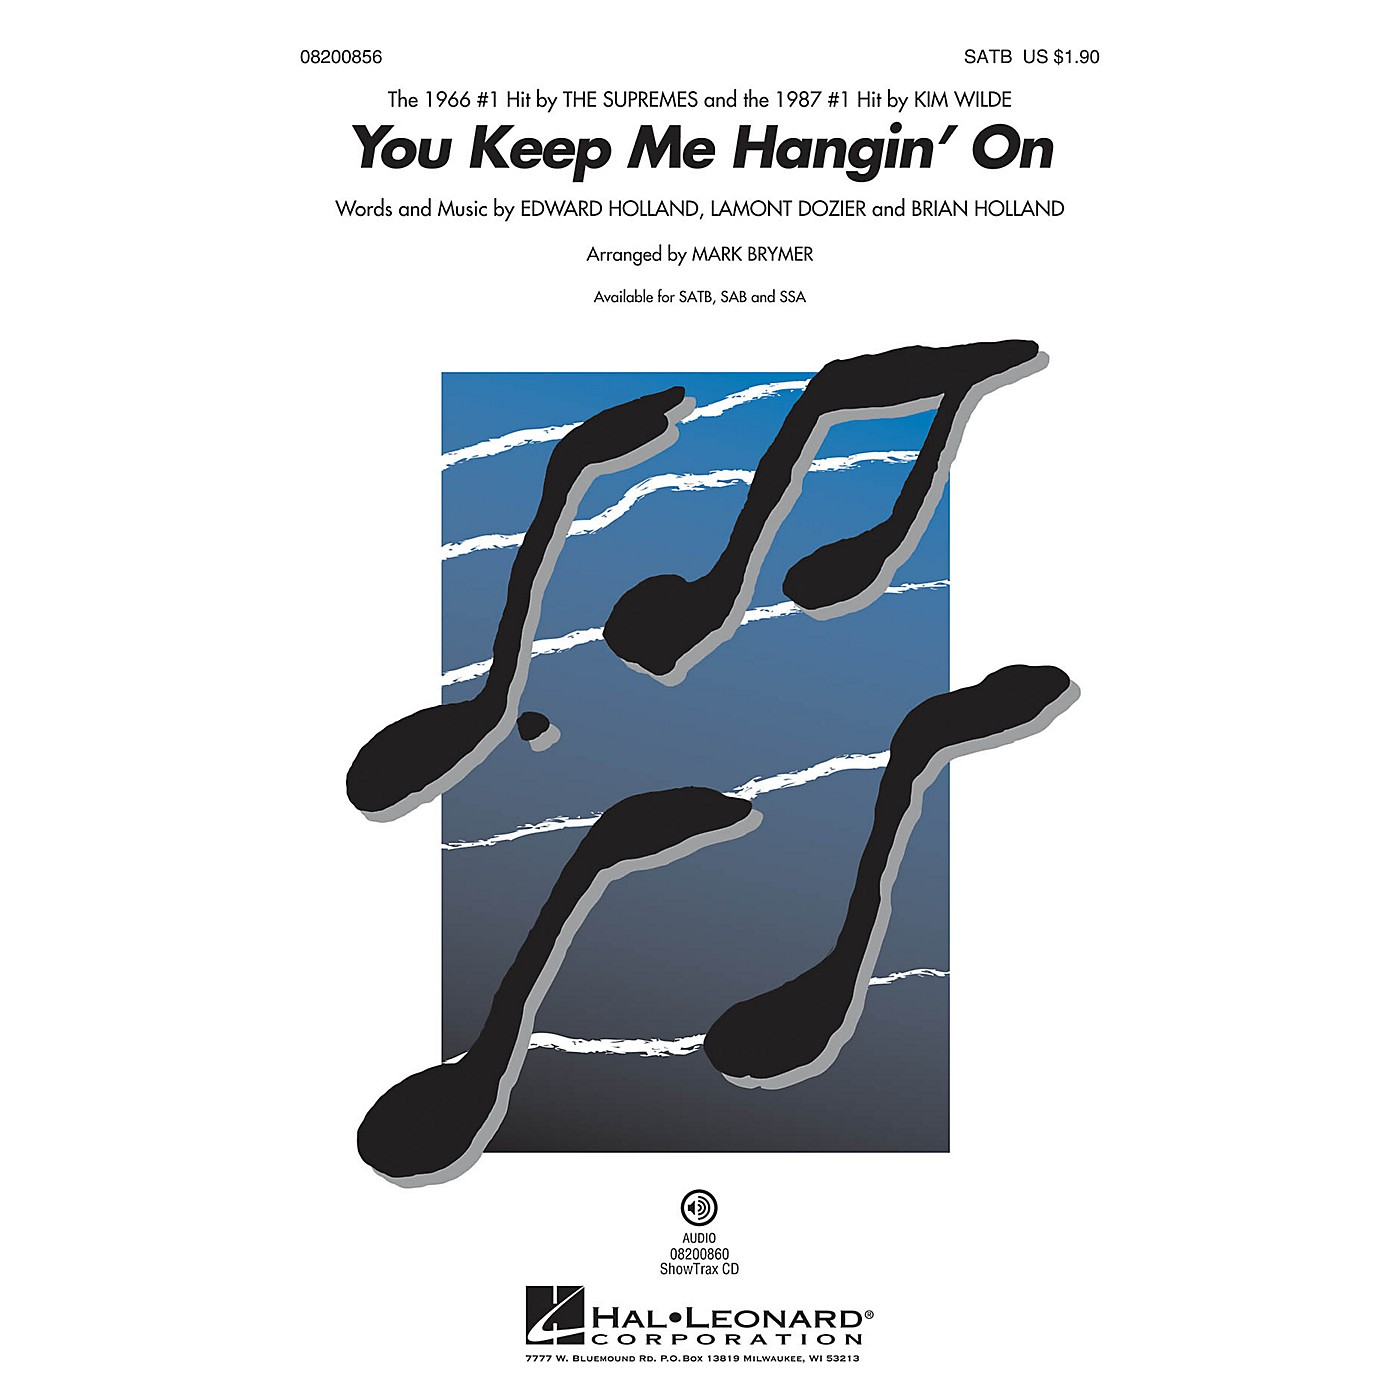 Hal Leonard You Keep Me Hangin' On SAB by The Supremes Arranged by Mark Brymer thumbnail